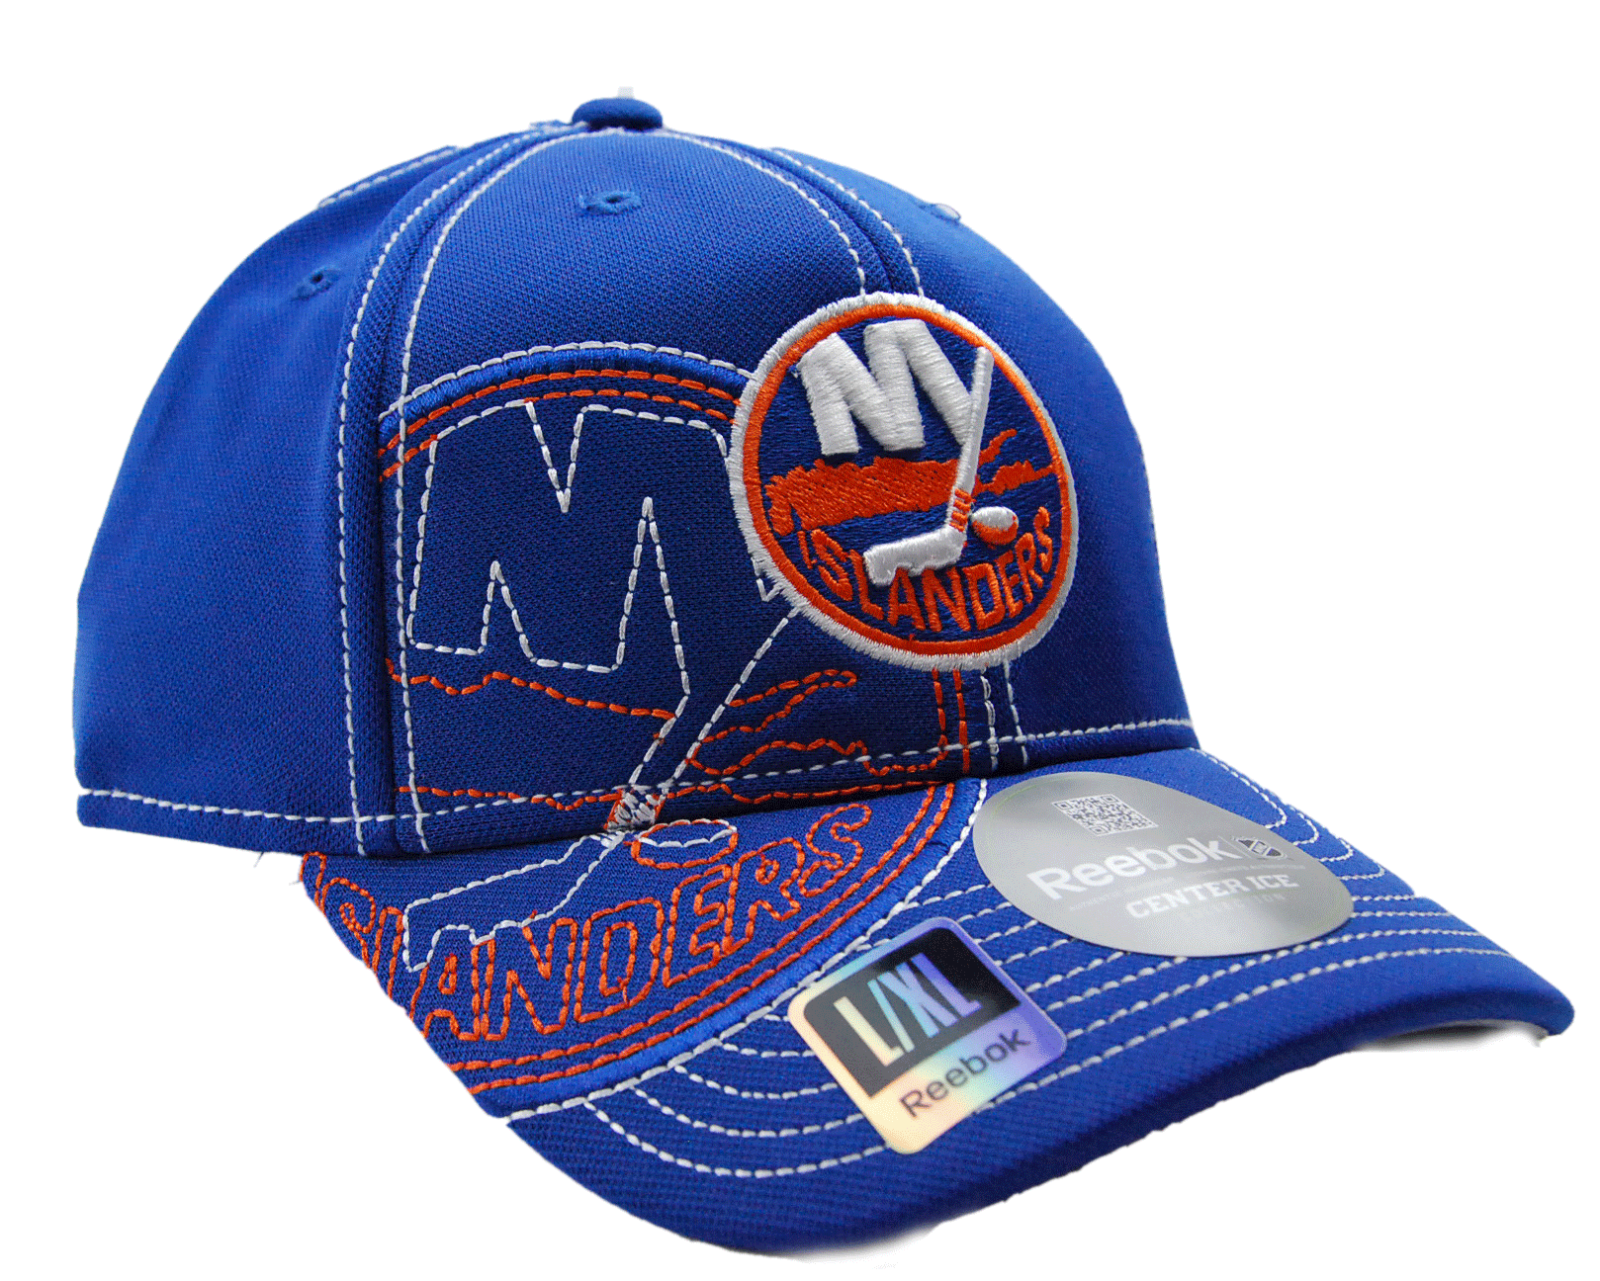 detailed look e345c d1f26 New York Islanders Reebok M250Z NHL Pro Draft Flex Fit Hockey Cap Hat L XL  3 3 of 5 See More